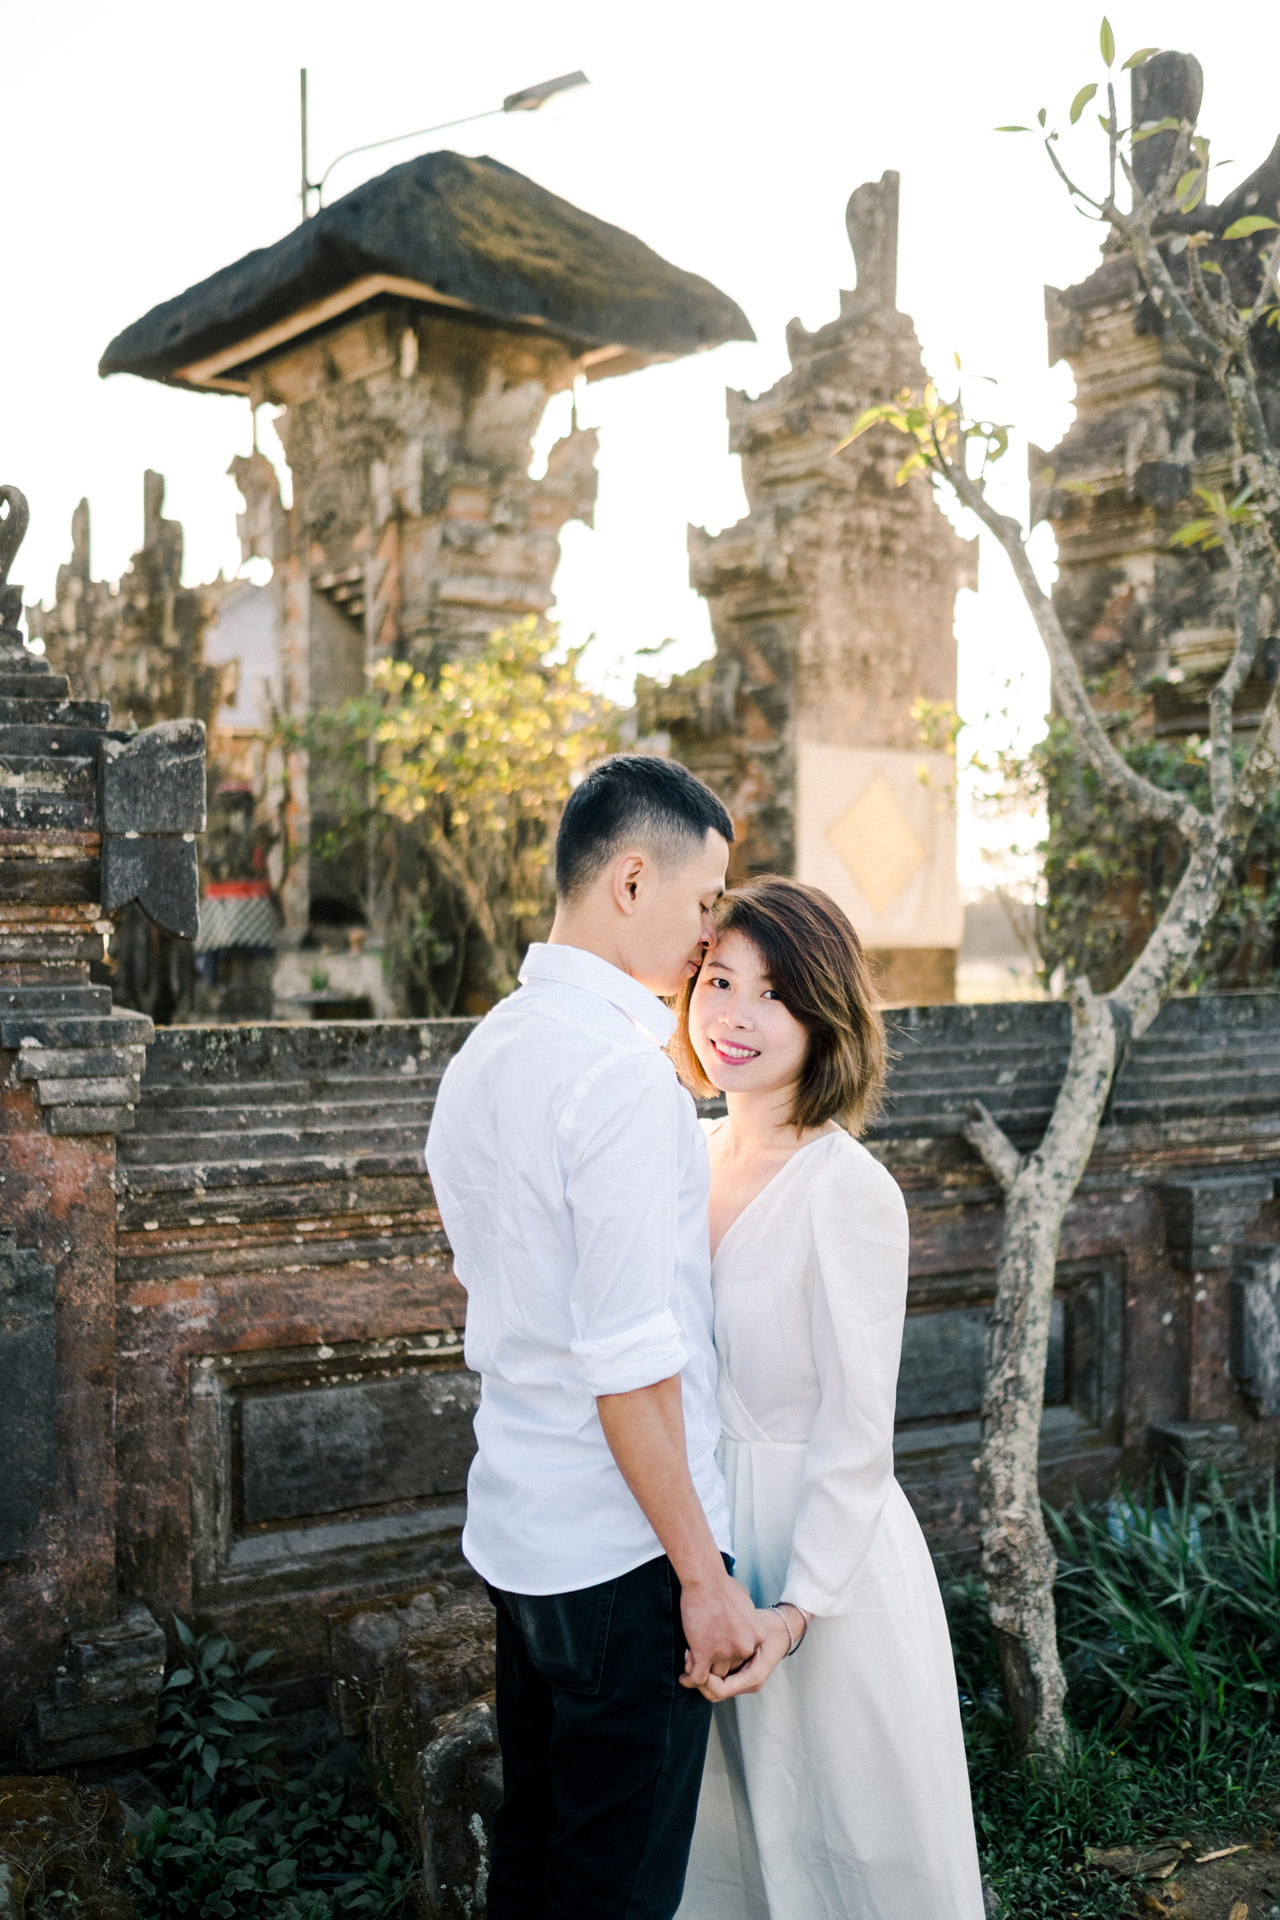 T&K: Bali Prewedding Photo Session in The Mountains 8